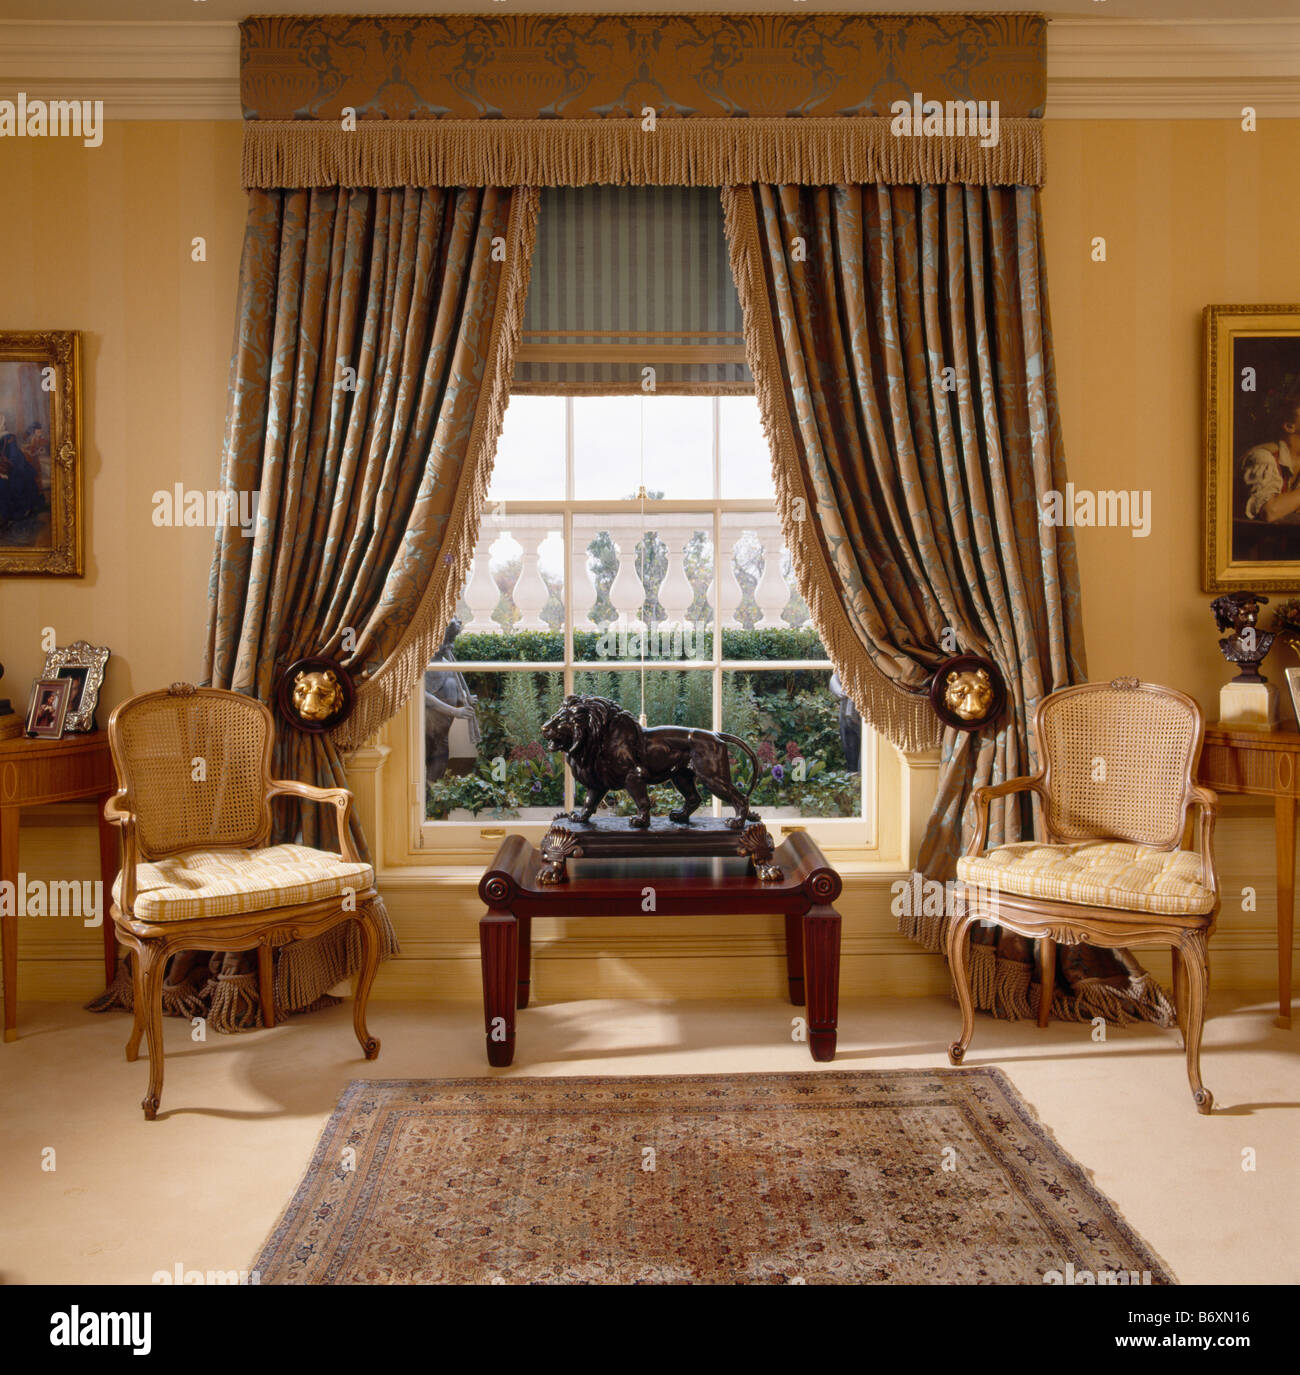 Blue And Beige Silk Curtains With Deep Pelmet And Blind In Living Room With  French Chairs Part 21